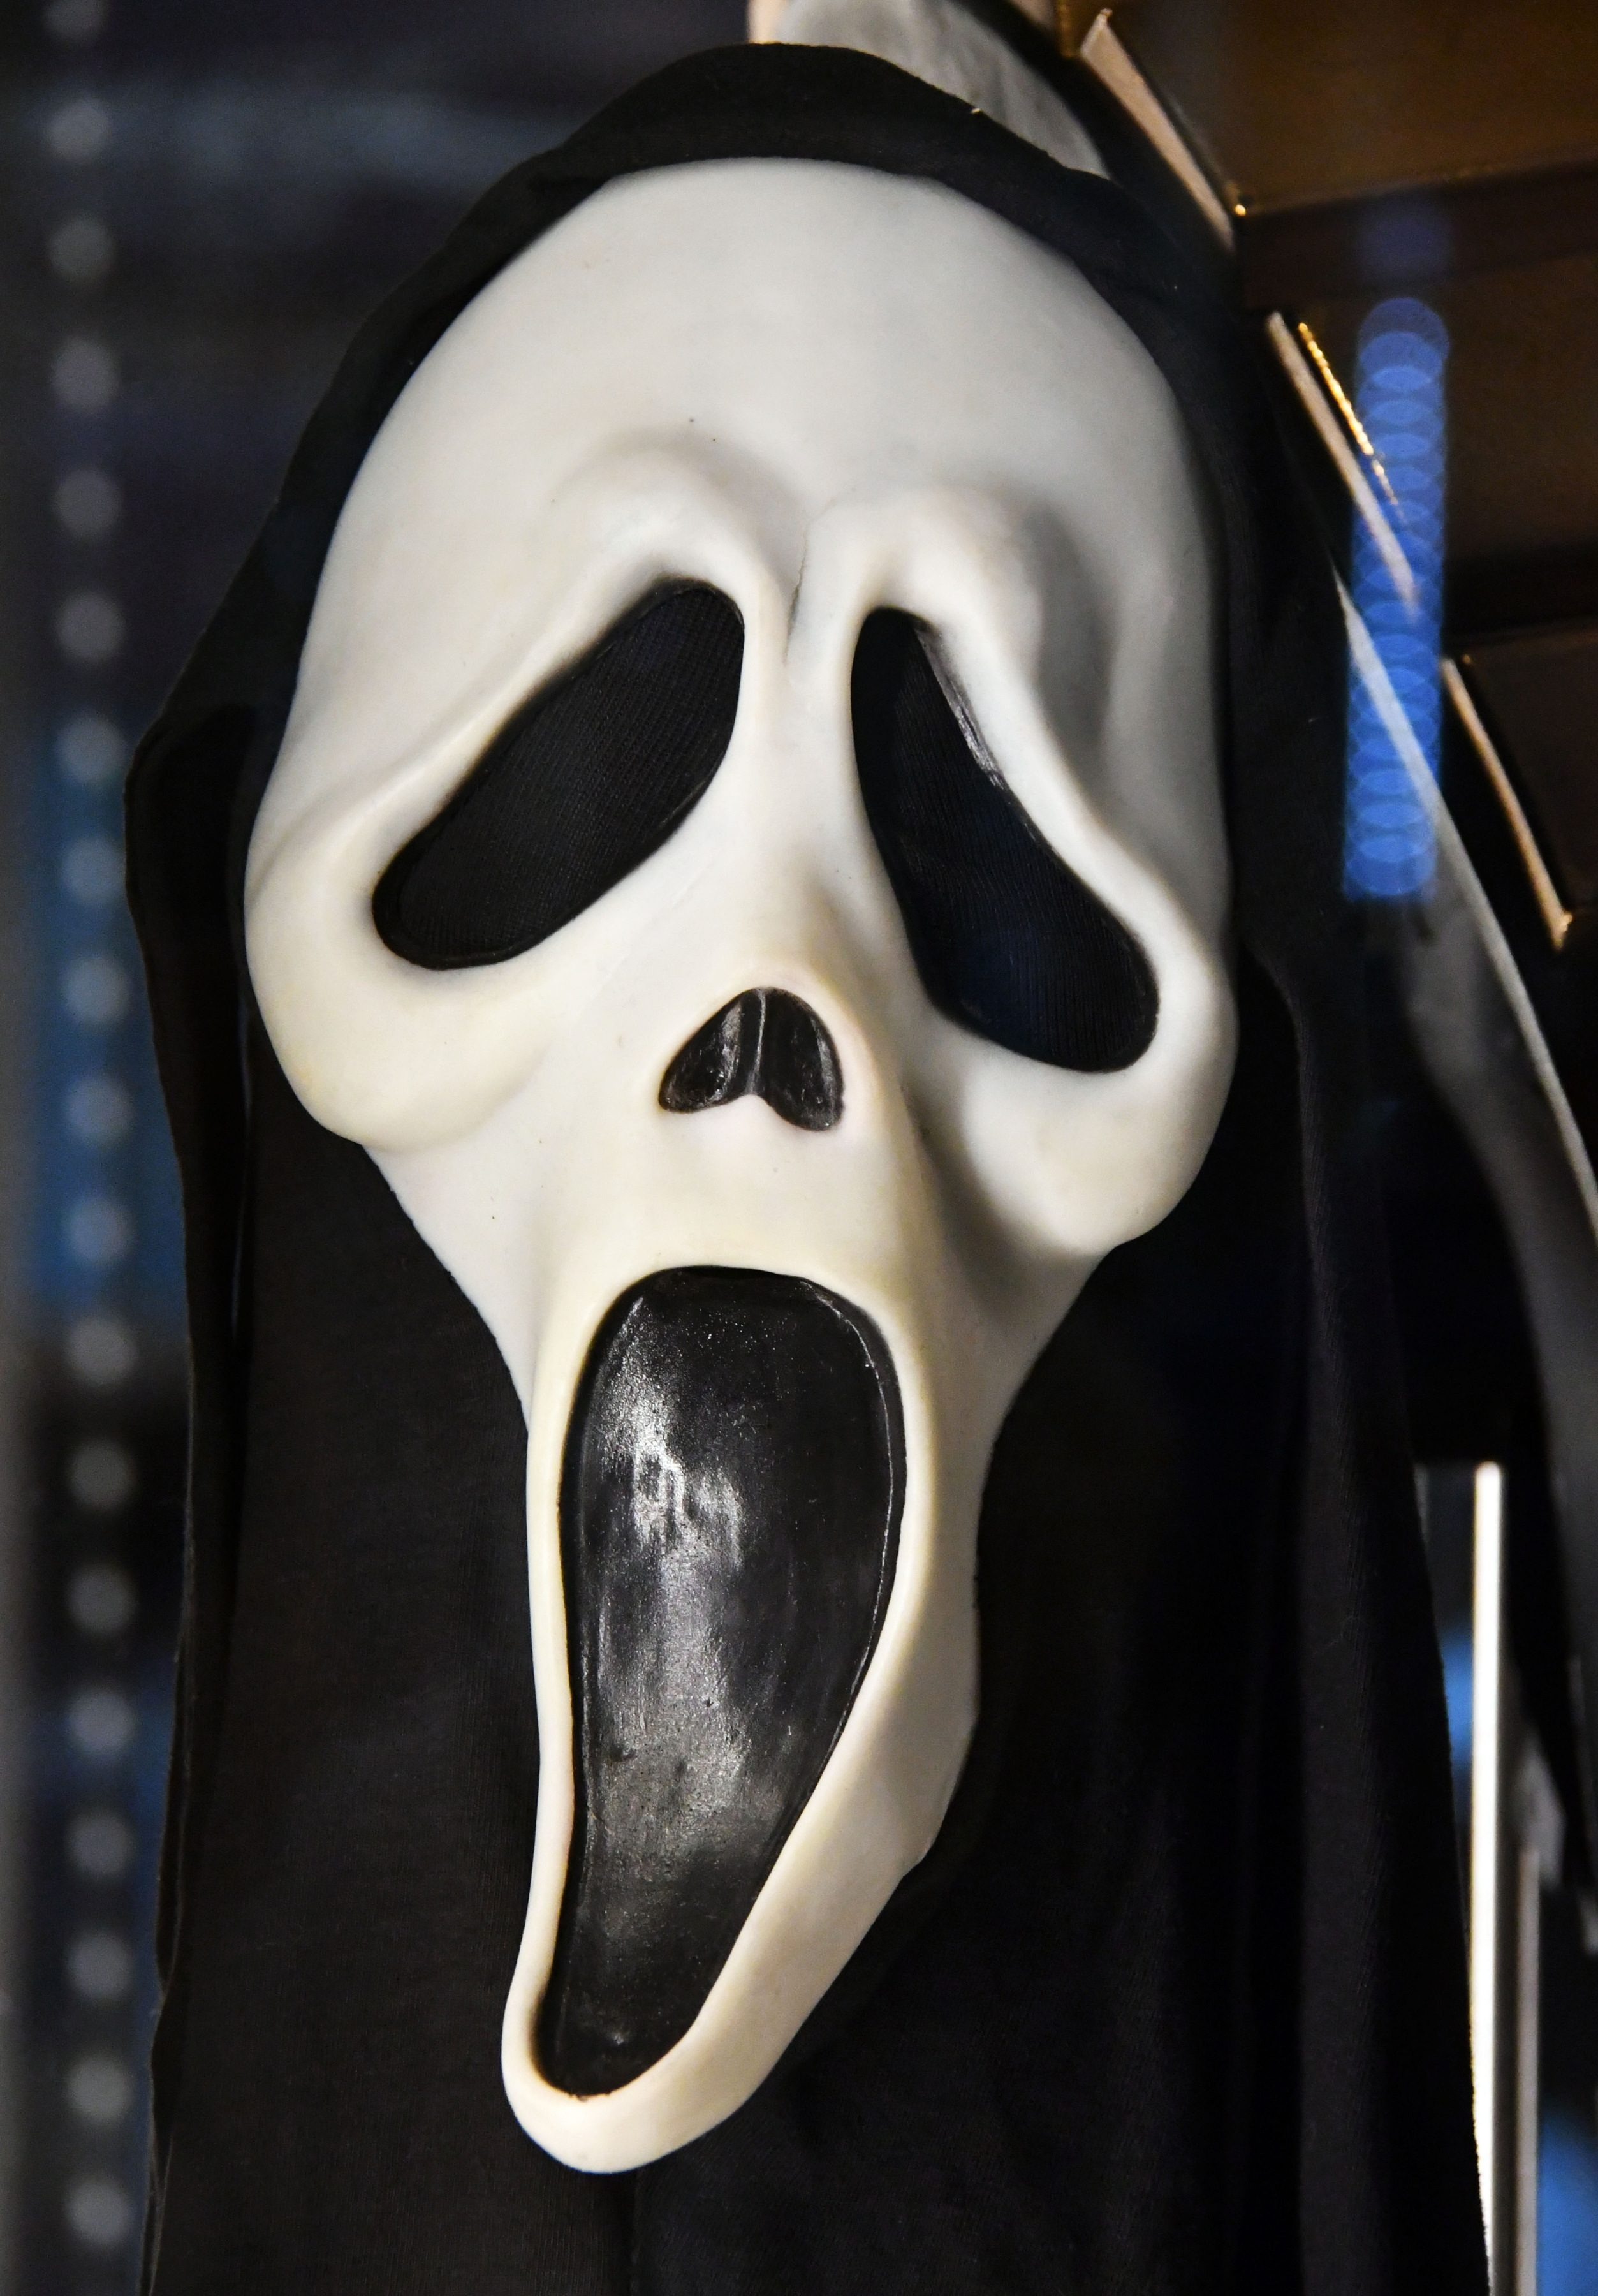 Mandatory Credit: Photo by Nils Jorgensen/Shutterstock (9870208ax) Ghostface Mask from Scream (1996). Estimate £6,000-8,000 Rare and iconic film memorabilia auction, London, UK - 06 Sep 2018 Rare and iconic blockbuster film and TV memorabilia with in excess of £3.5 million ($4.6 million) to be auctioned in UK. Auction presenting some of the most iconic cinematic artefacts of our time of rare blockbuster film memorabilia, including jacket worn by Harrison Ford in his role as Han Solo in the Star Wars film The Empire Strikes Back expected to fetch £1m, is among 600 lots to be auctioned by Prop Store at London's BFI Imax